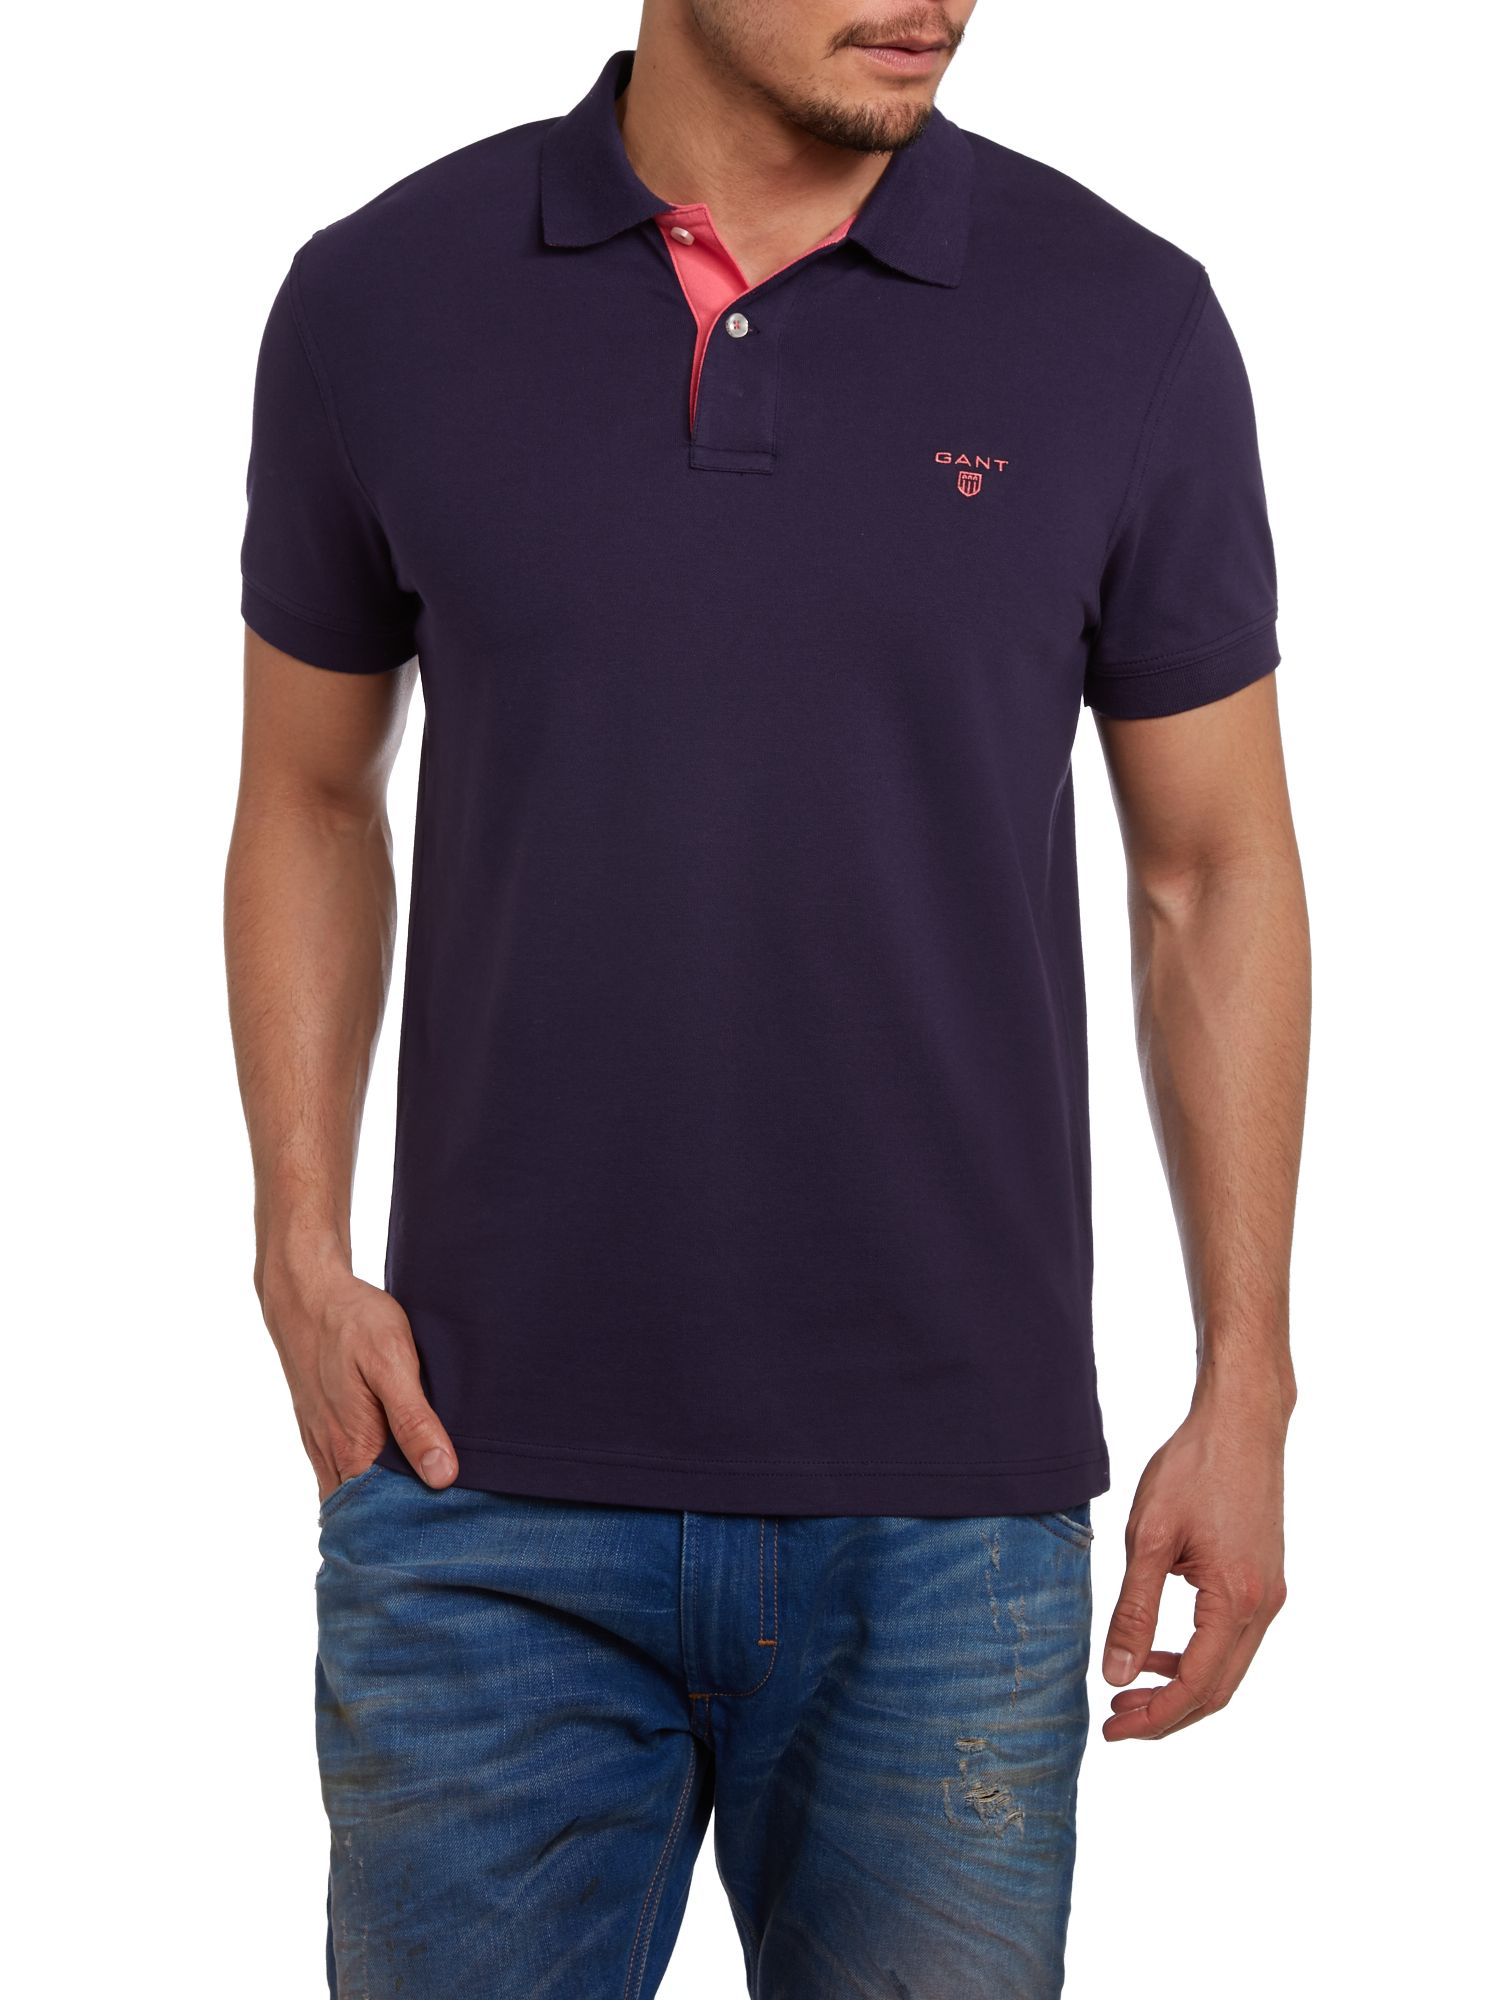 Gant Contrast Collar Polo Shirt In Purple For Men Lyst